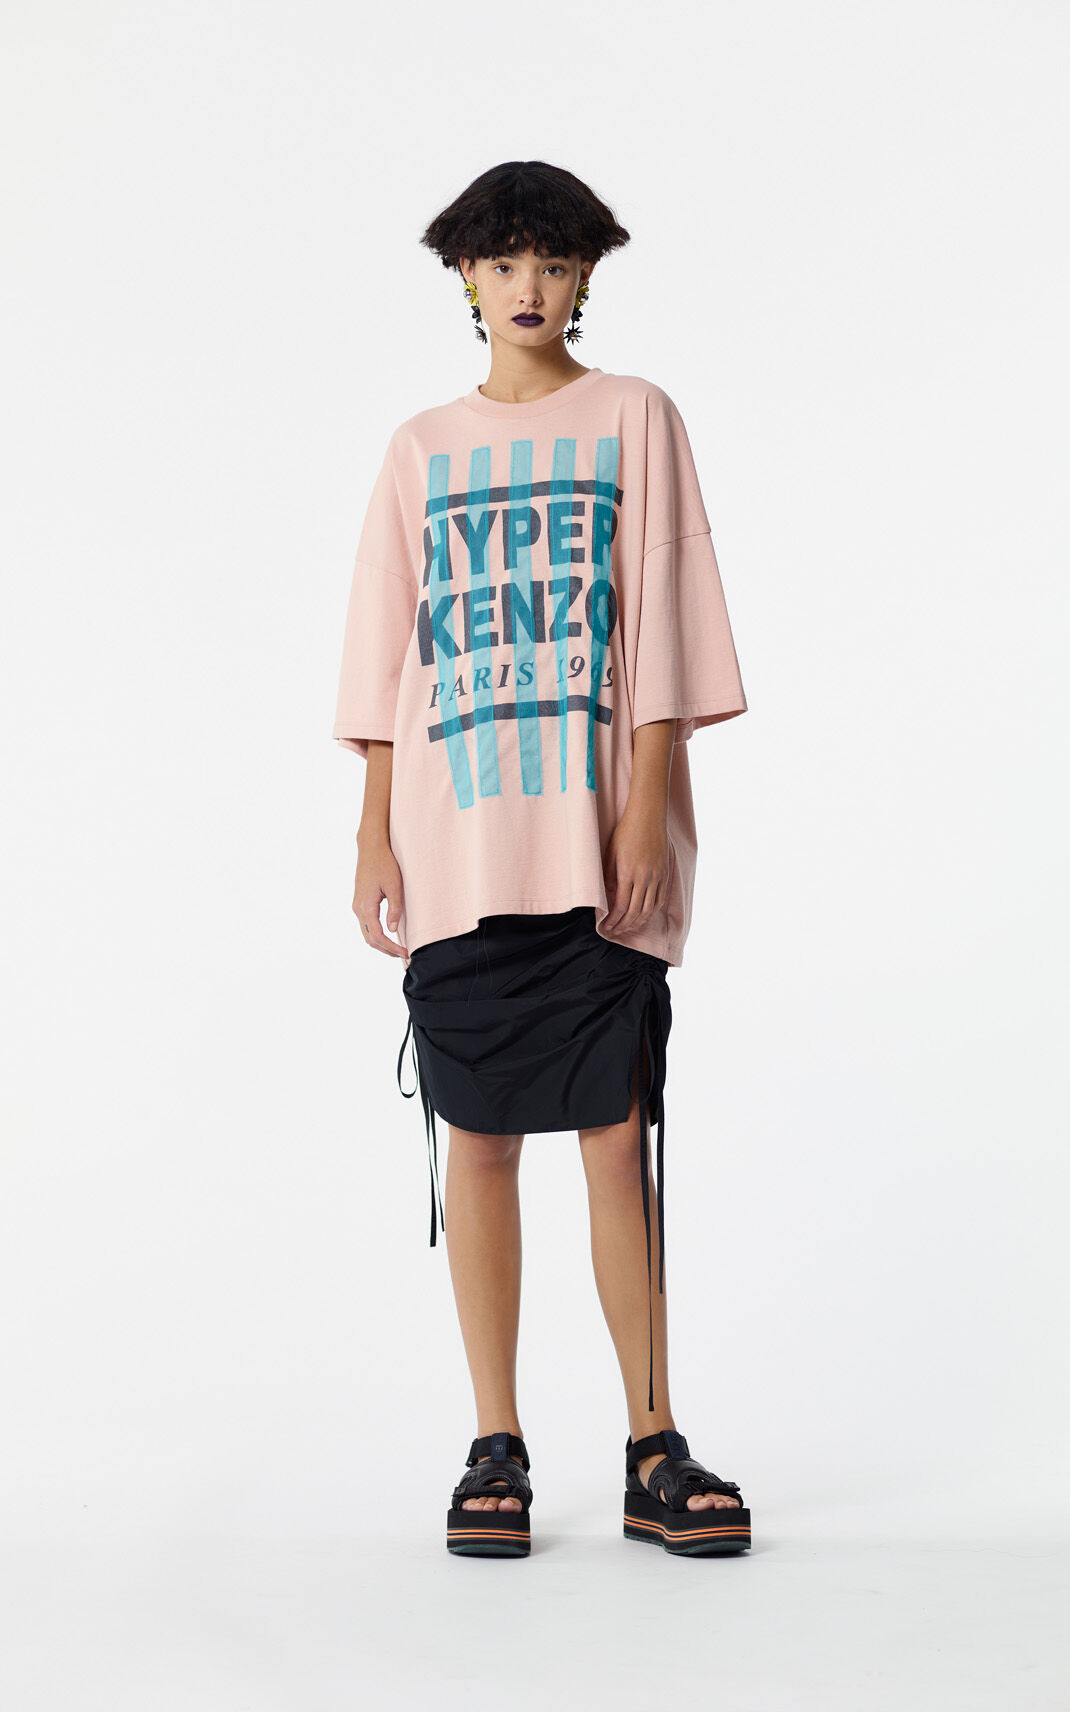 SKIN Hyper KENZO t-shirt for women